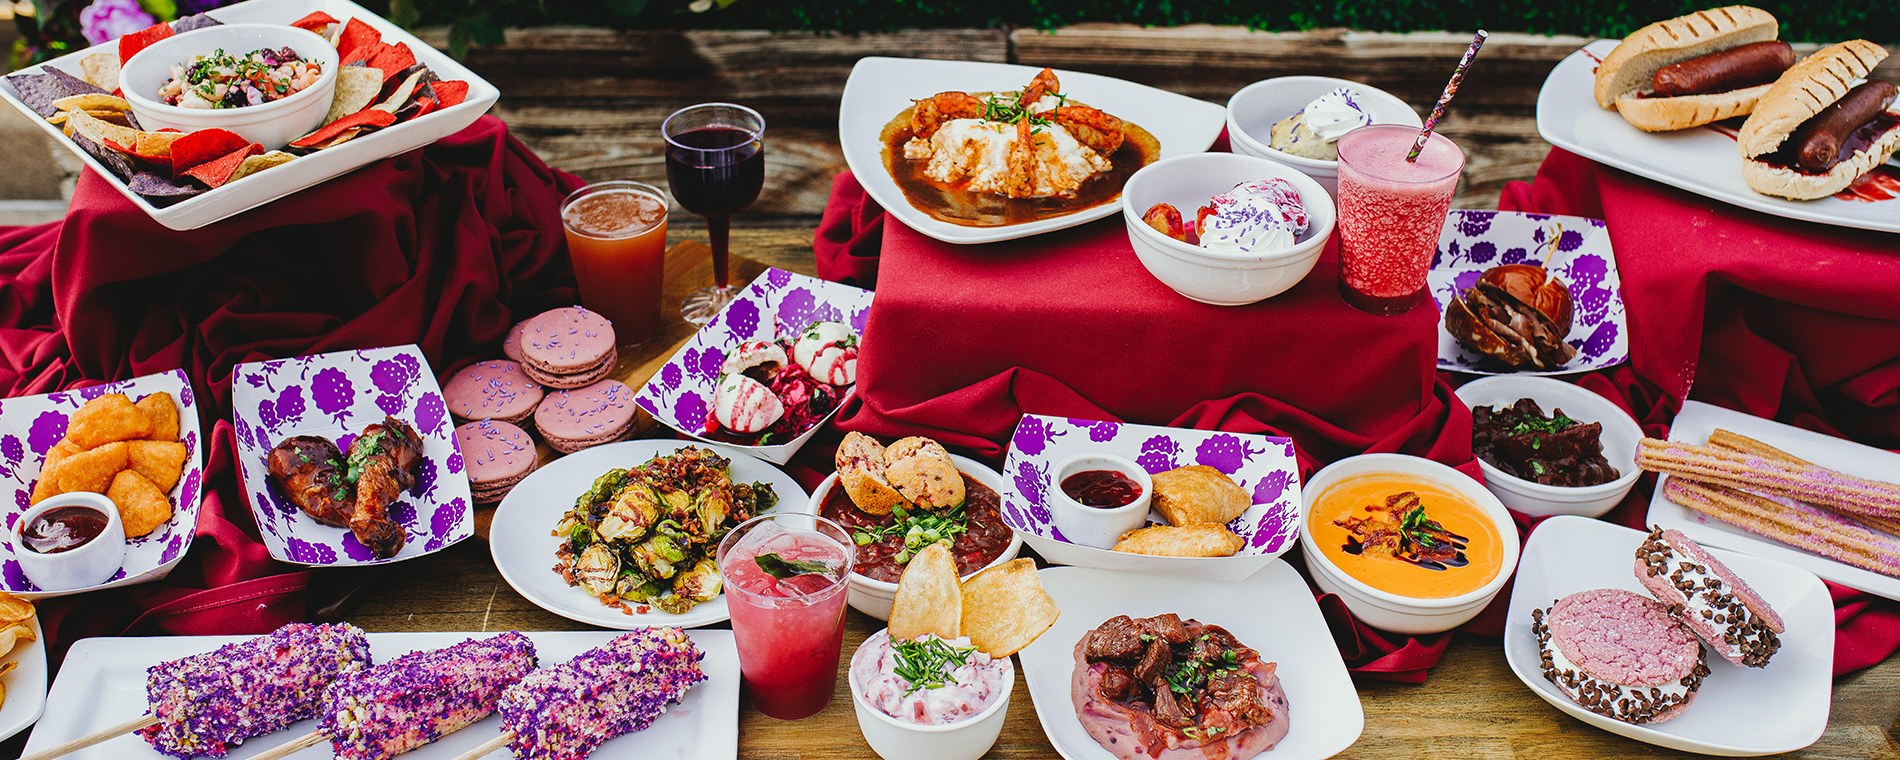 Food & Drinks at Knott's Boysenberry Festival